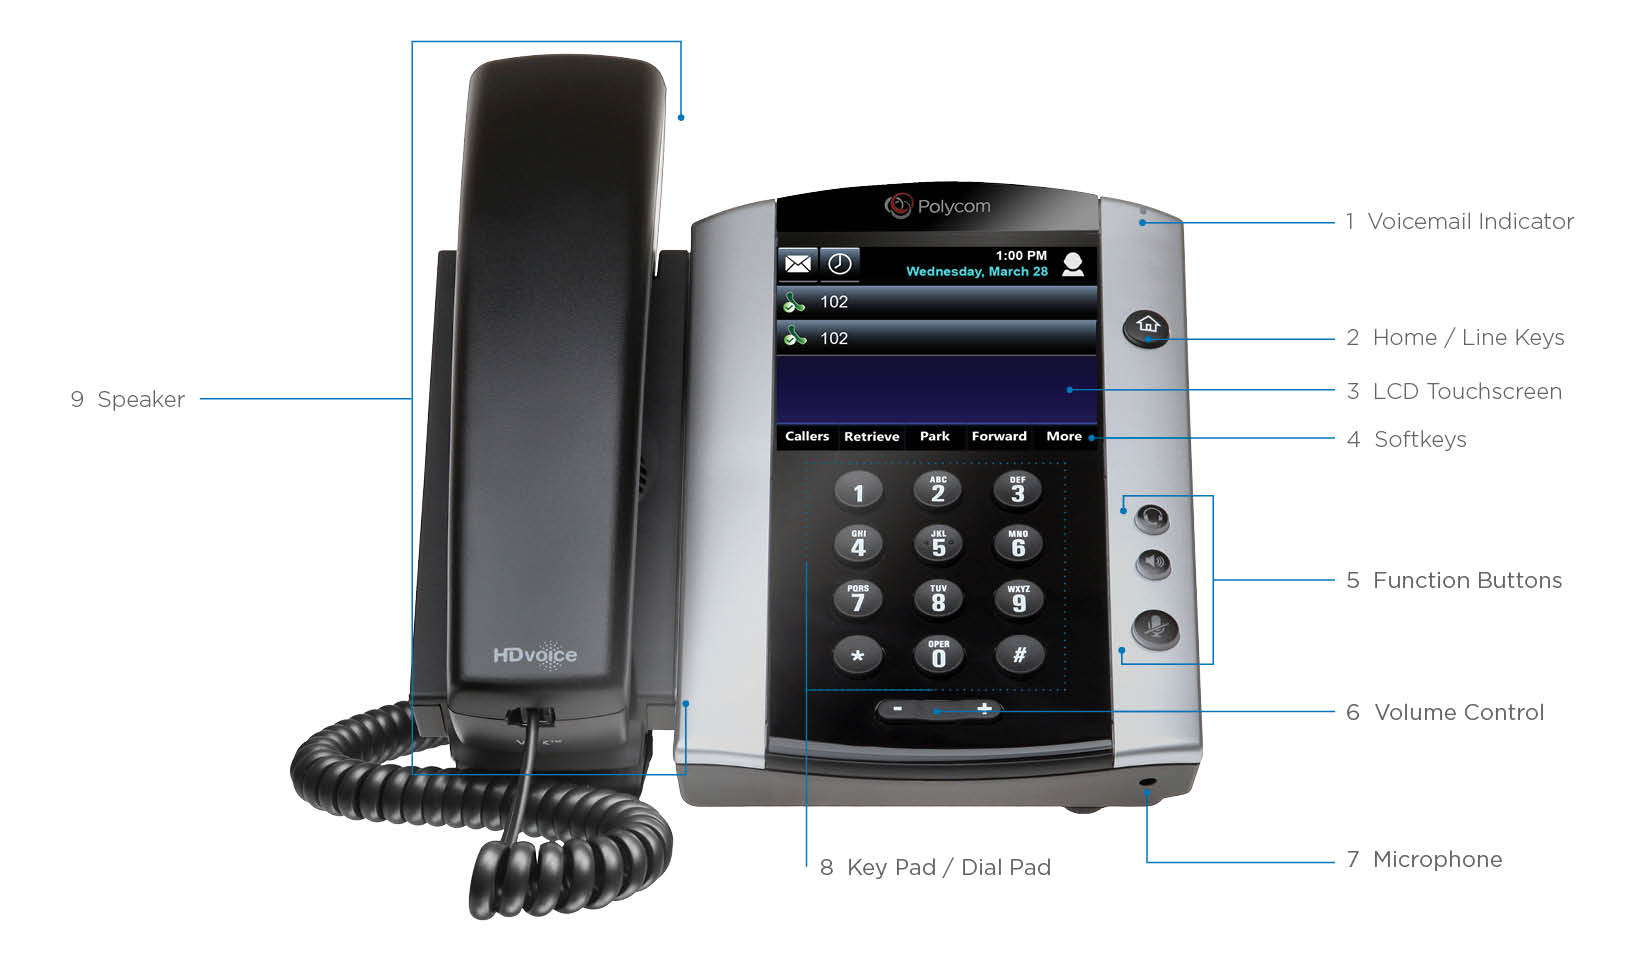 Polycom VVX front view, opens full resolution in a new tab. The button locations on the phone are described in the list above this image.